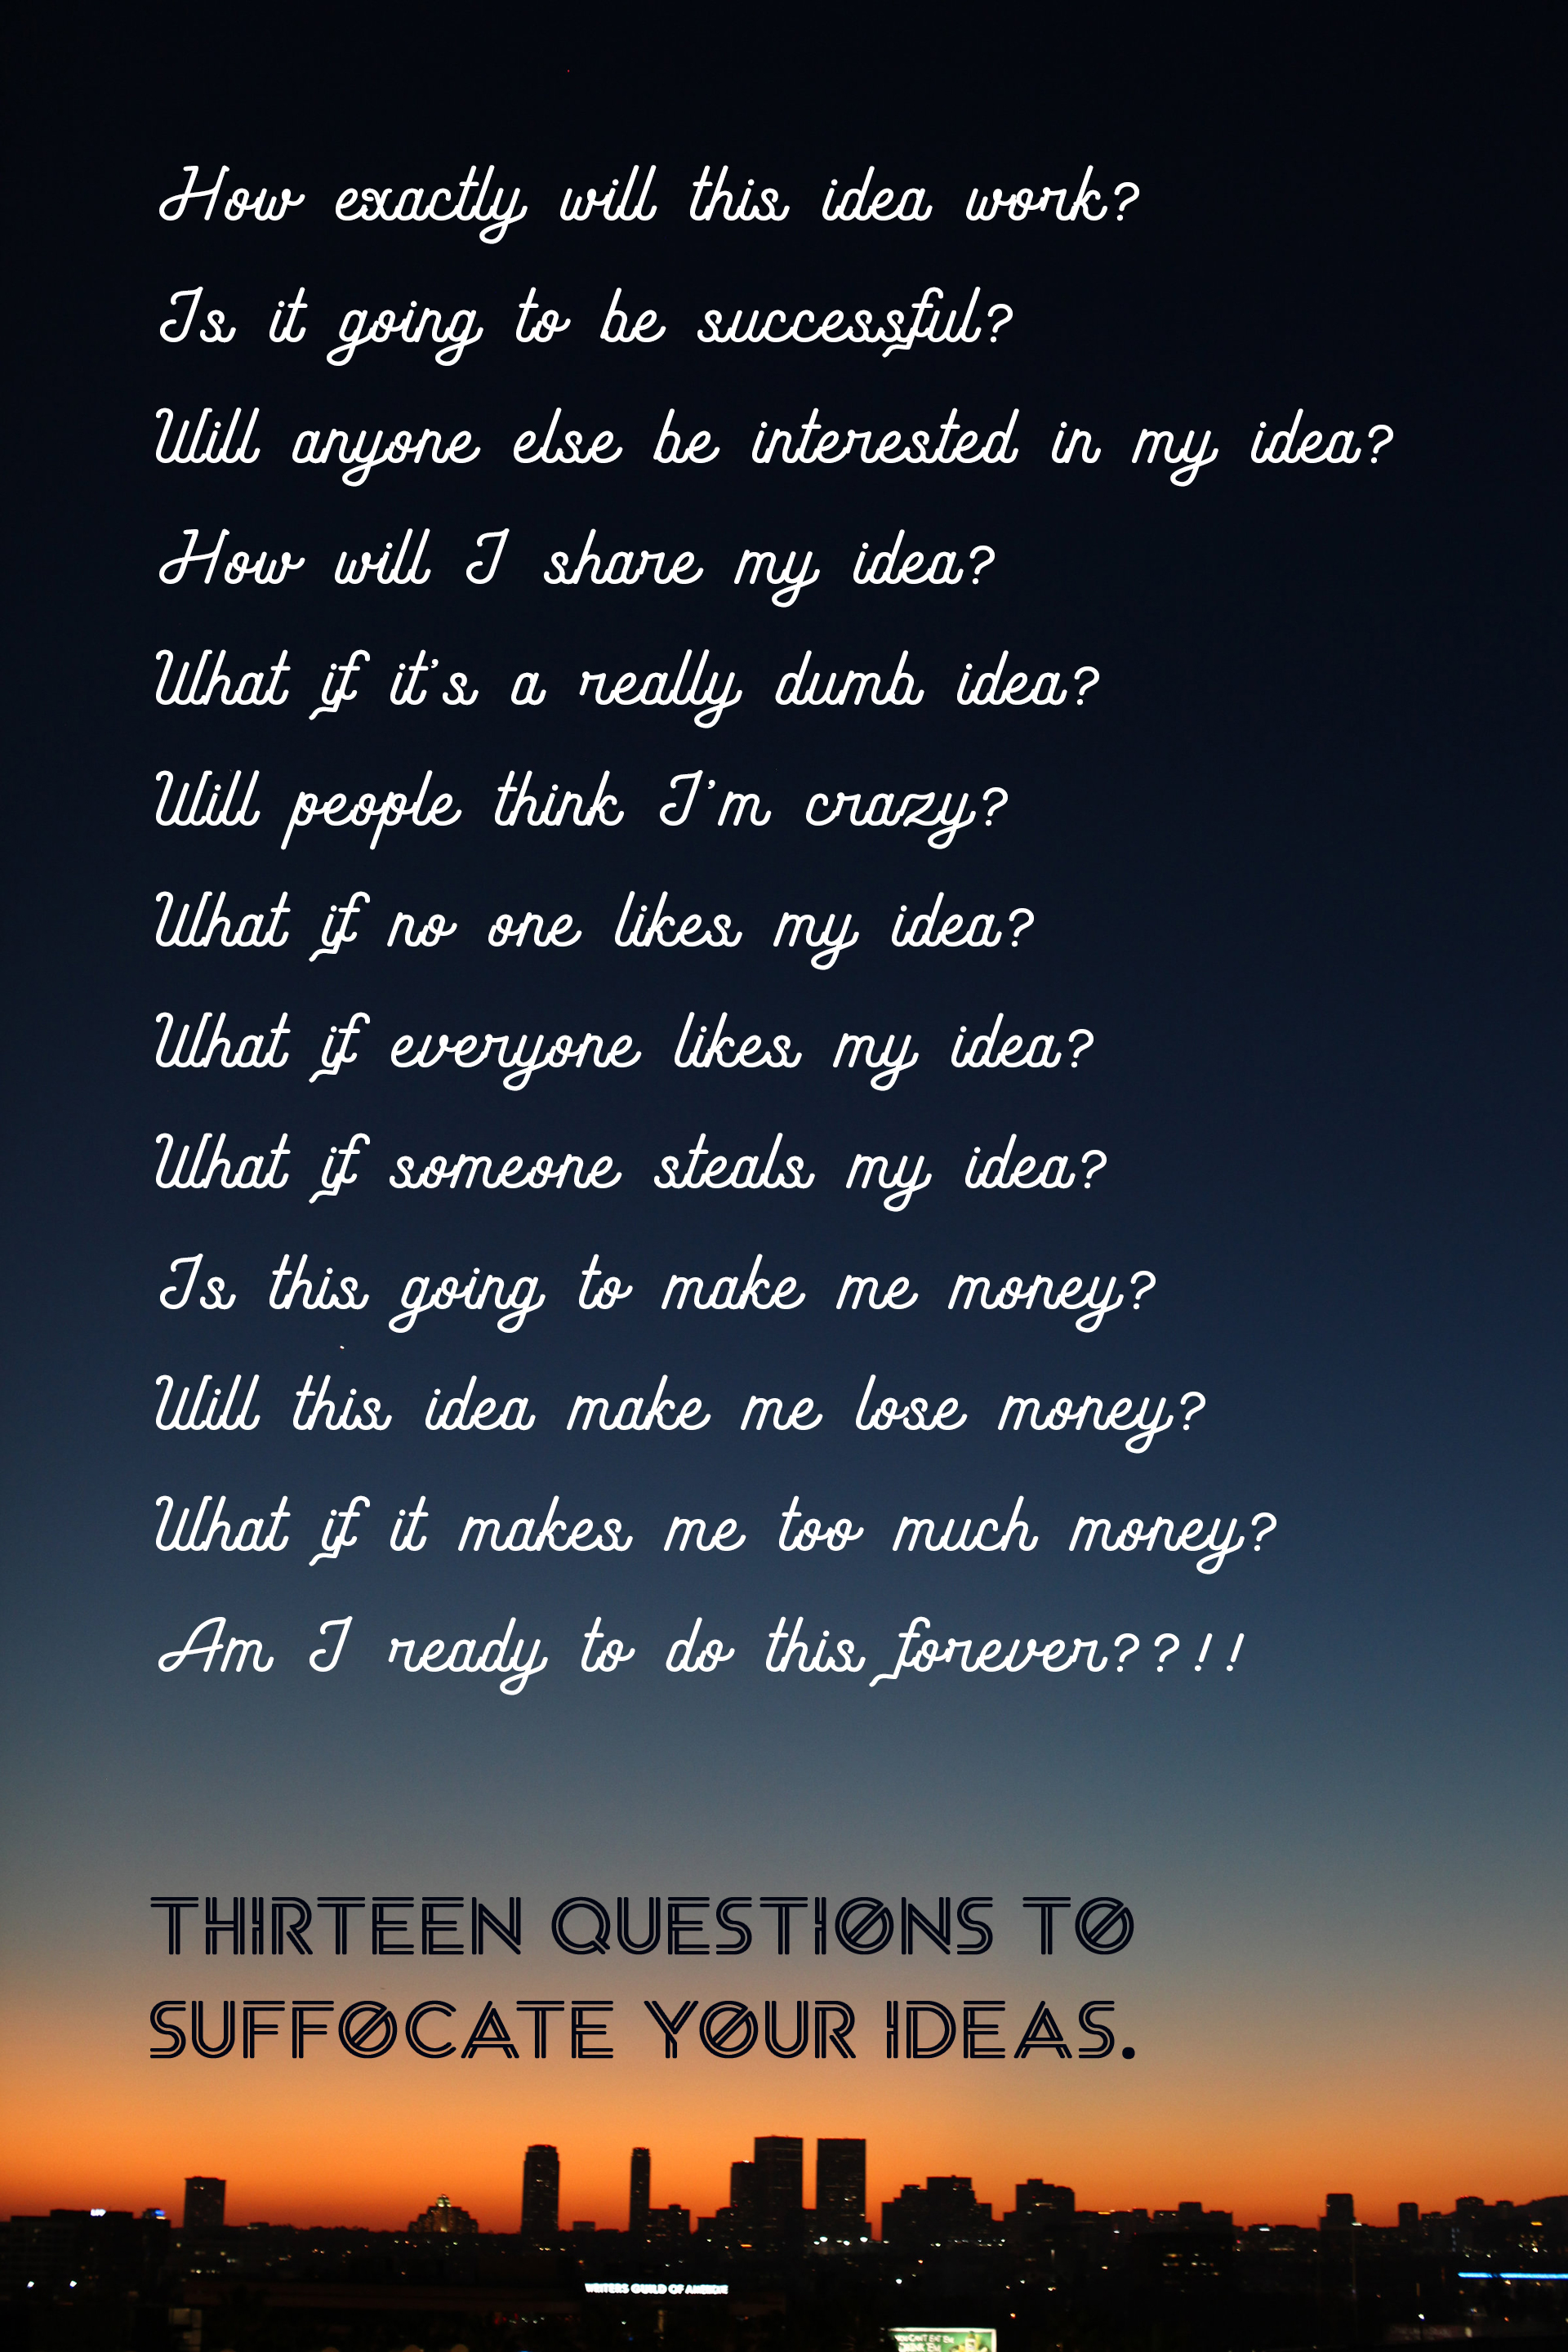 13 questions to suffocate your ideas